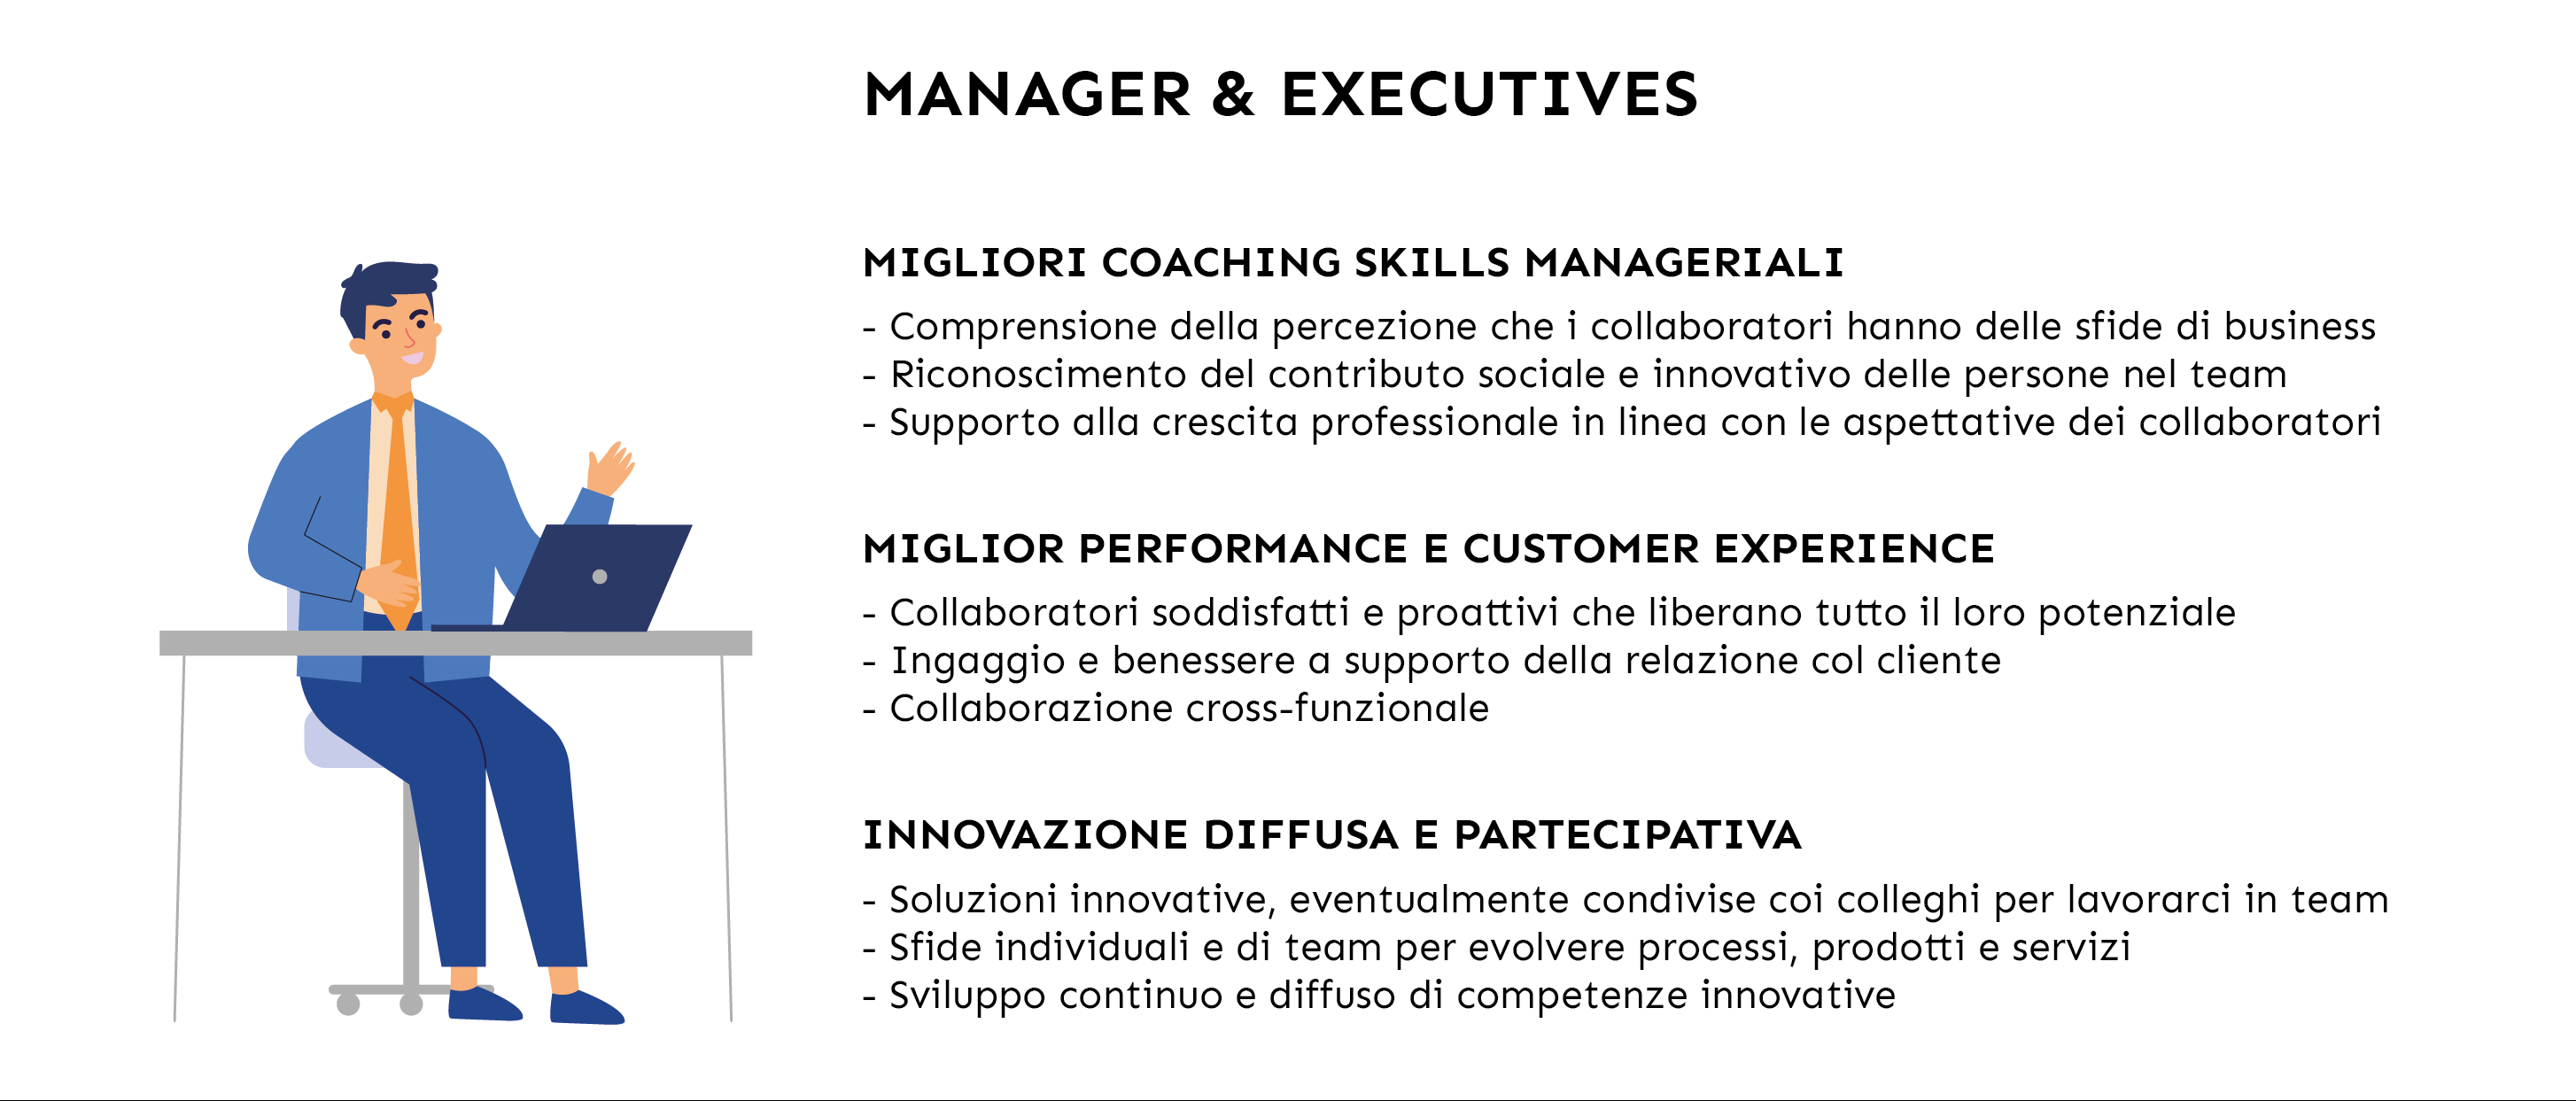 Manager and executives 1.5